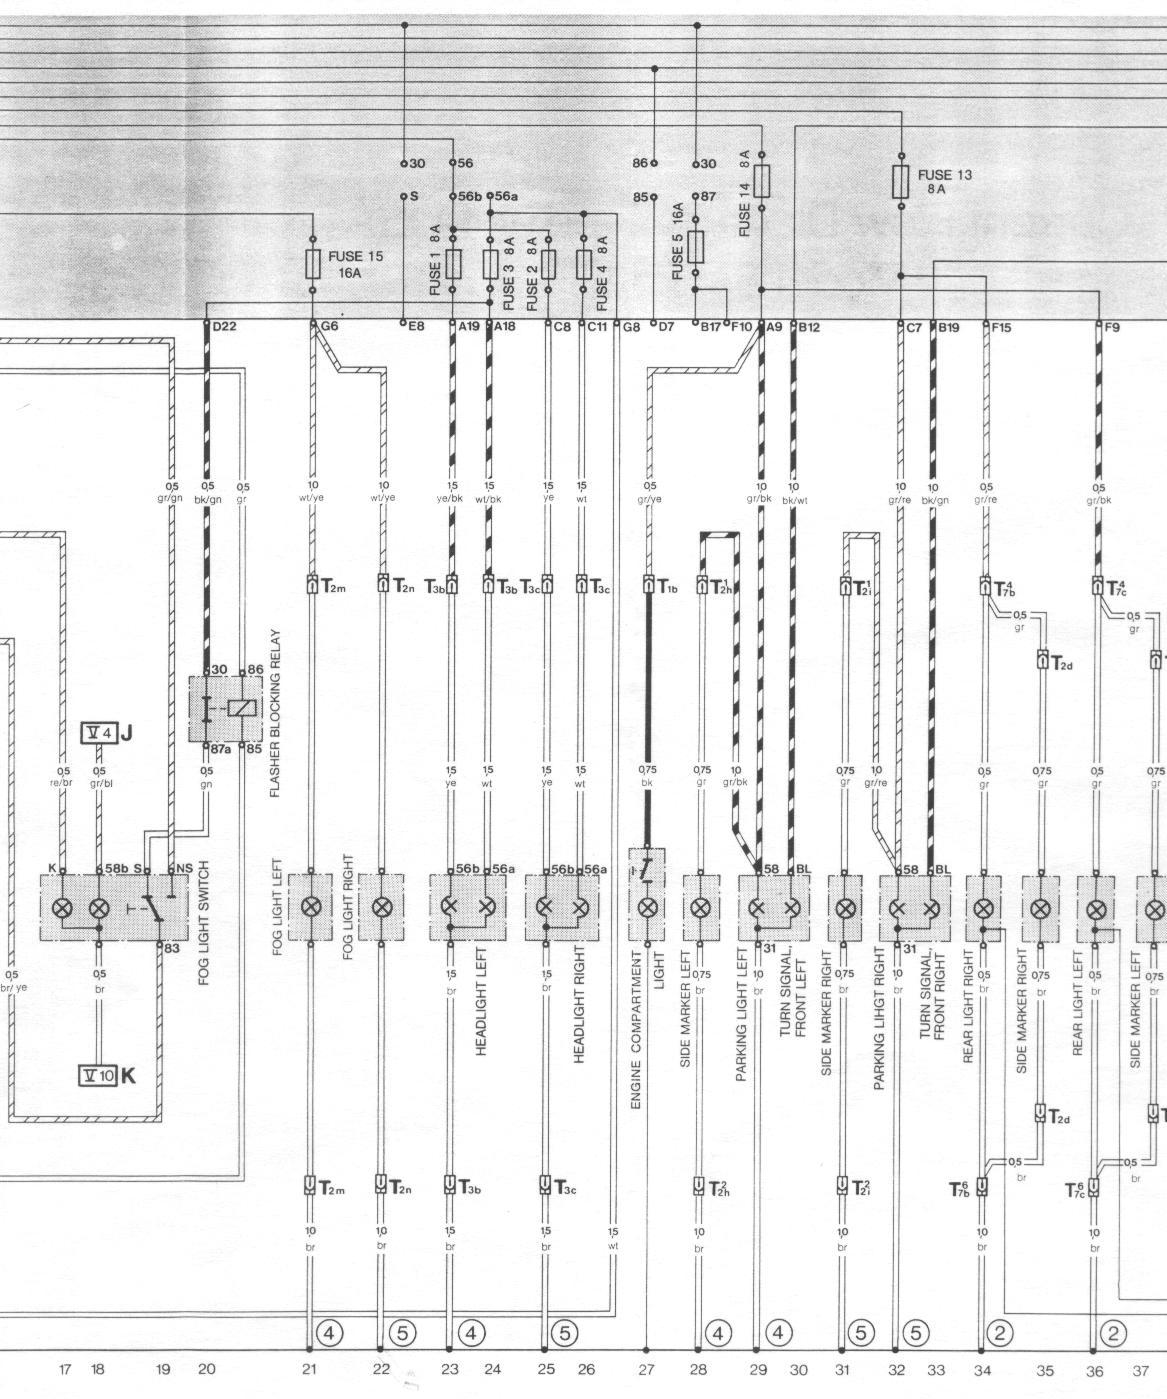 hight resolution of porsche 924 fuse diagram enthusiast wiring diagrams u2022 rh bwpartnersautos com mazda mx3 fuse box diagram